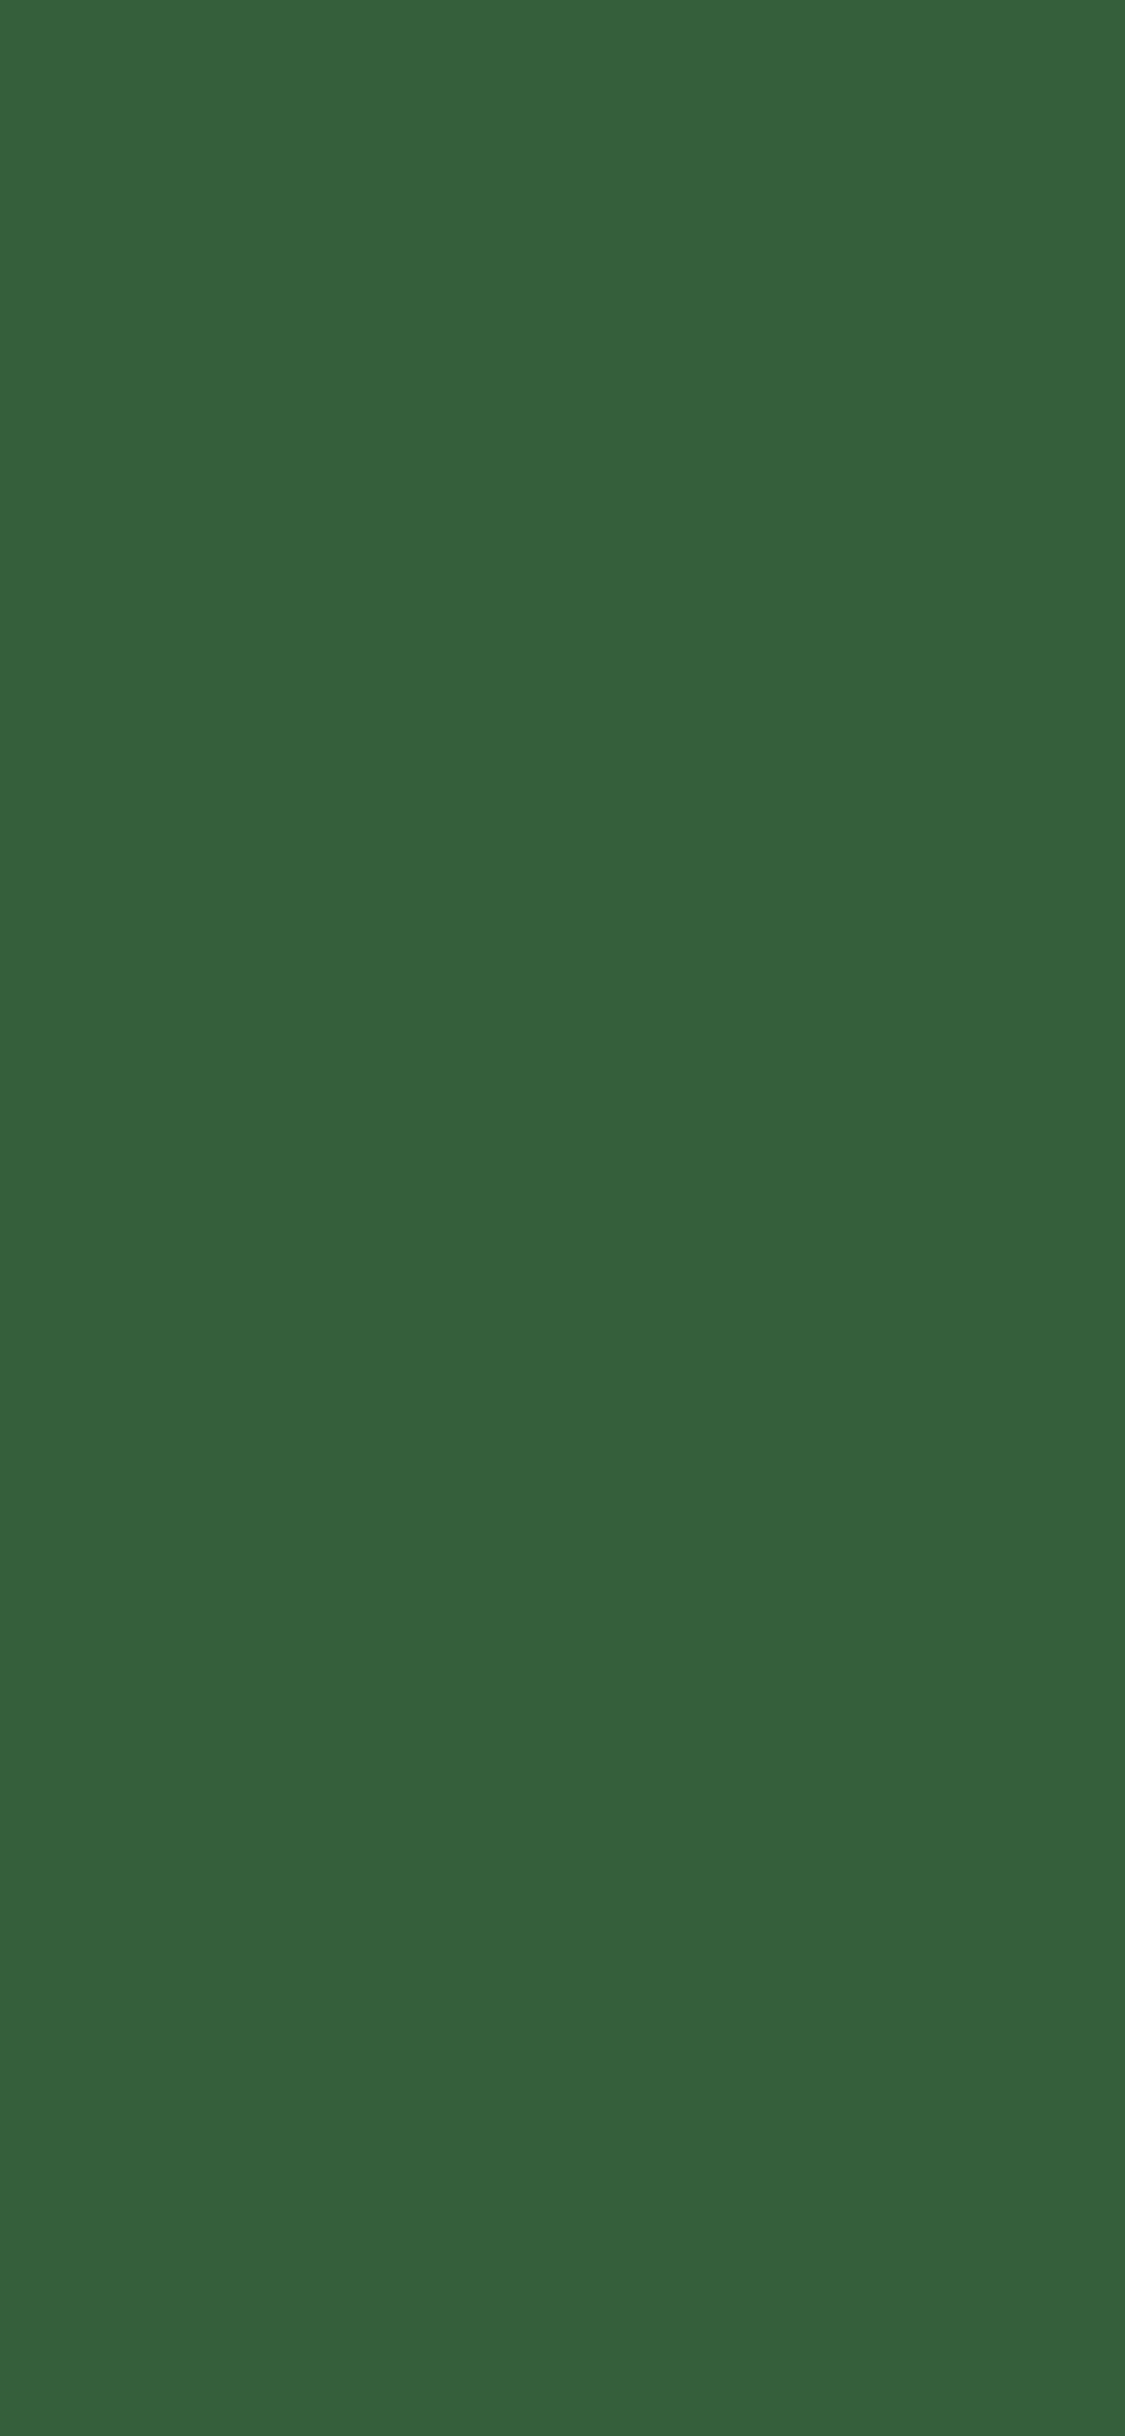 1125x2436 Hunter Green Solid Color Background